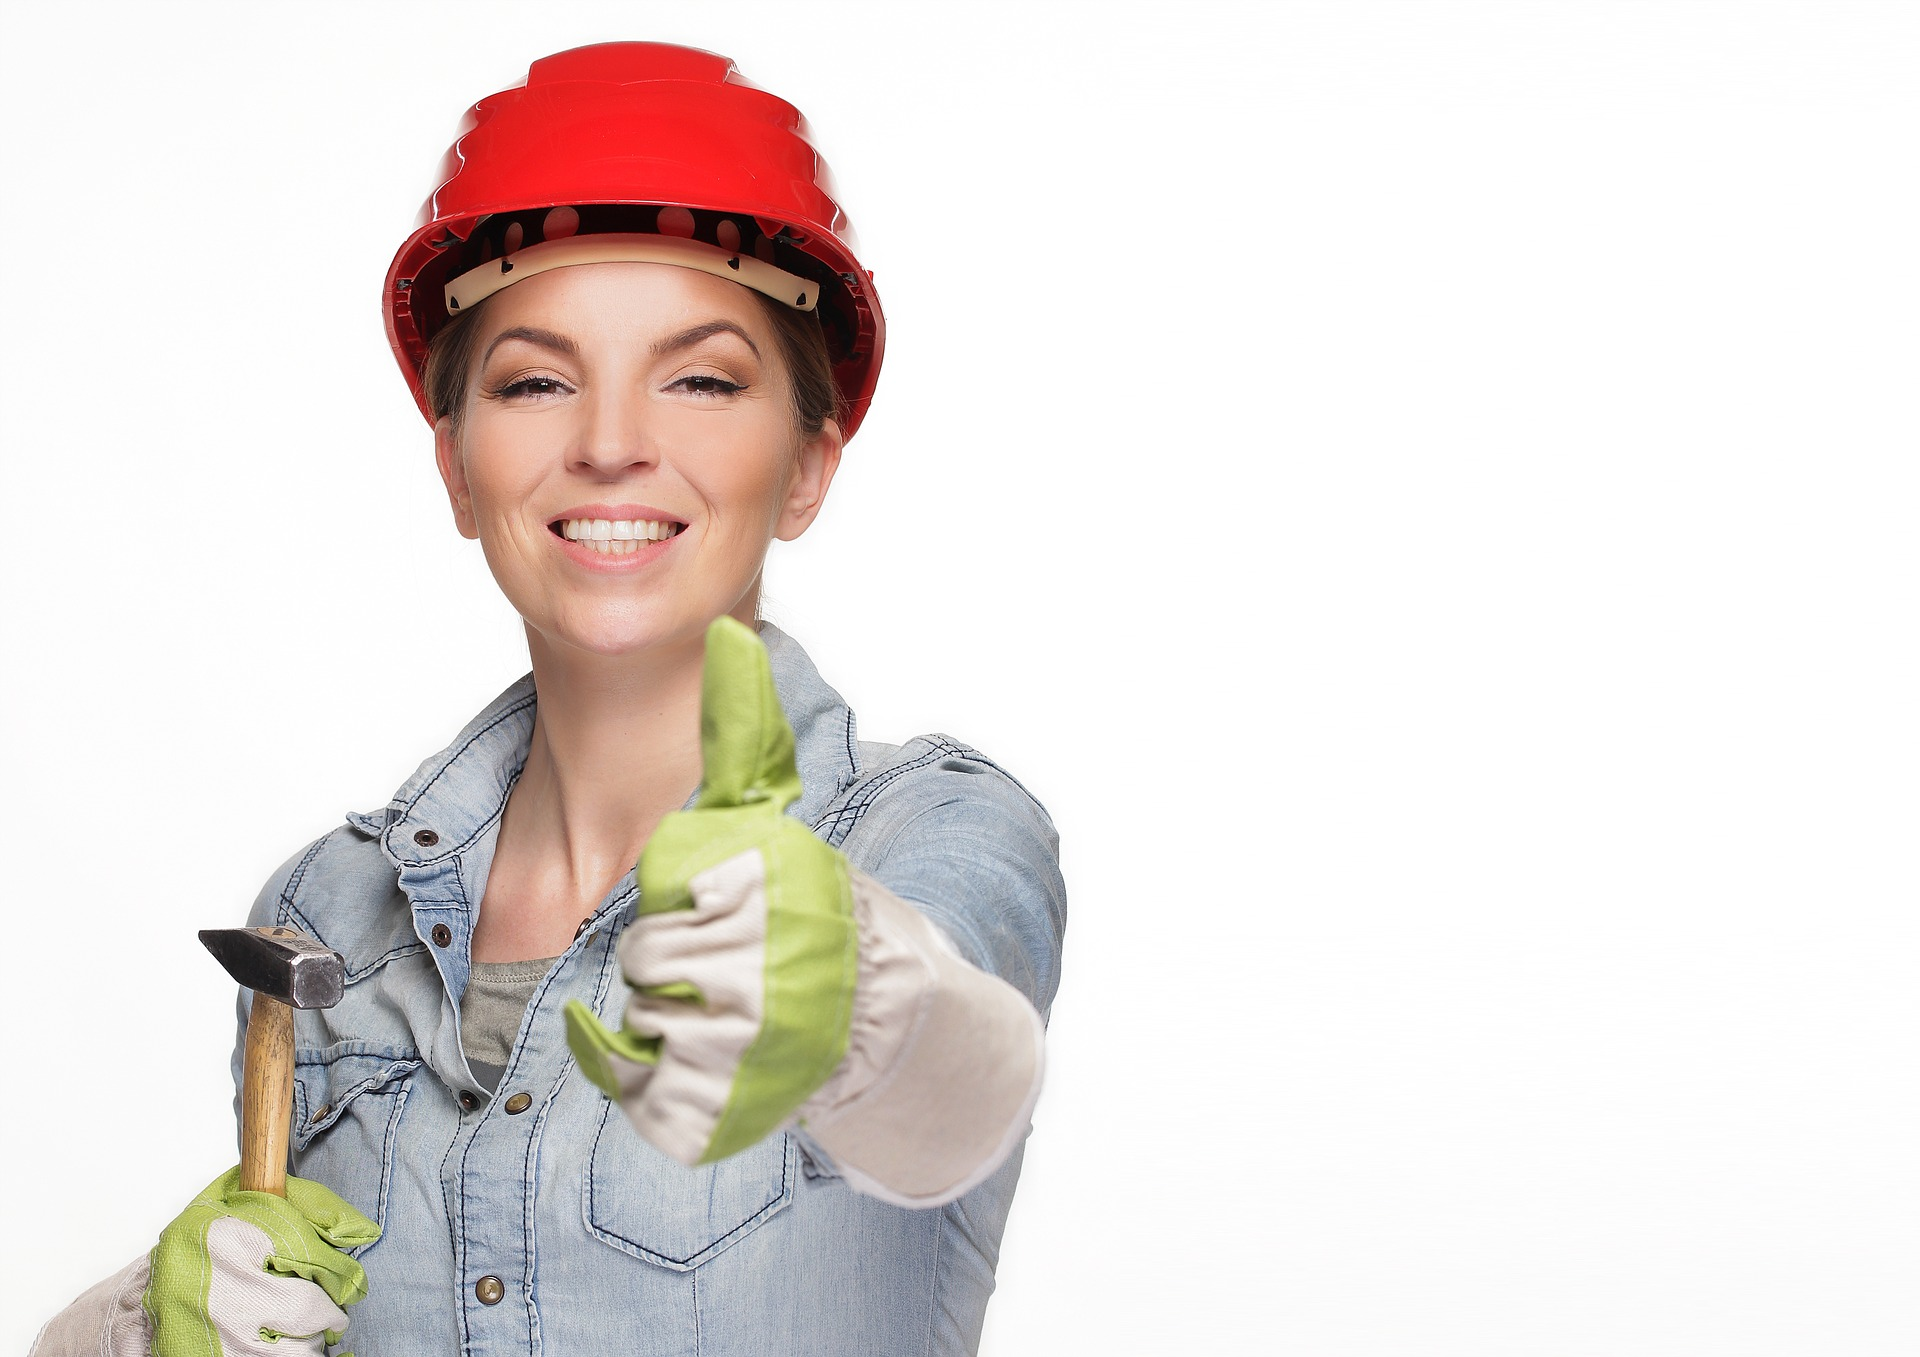 smiling woman wearing hard hat